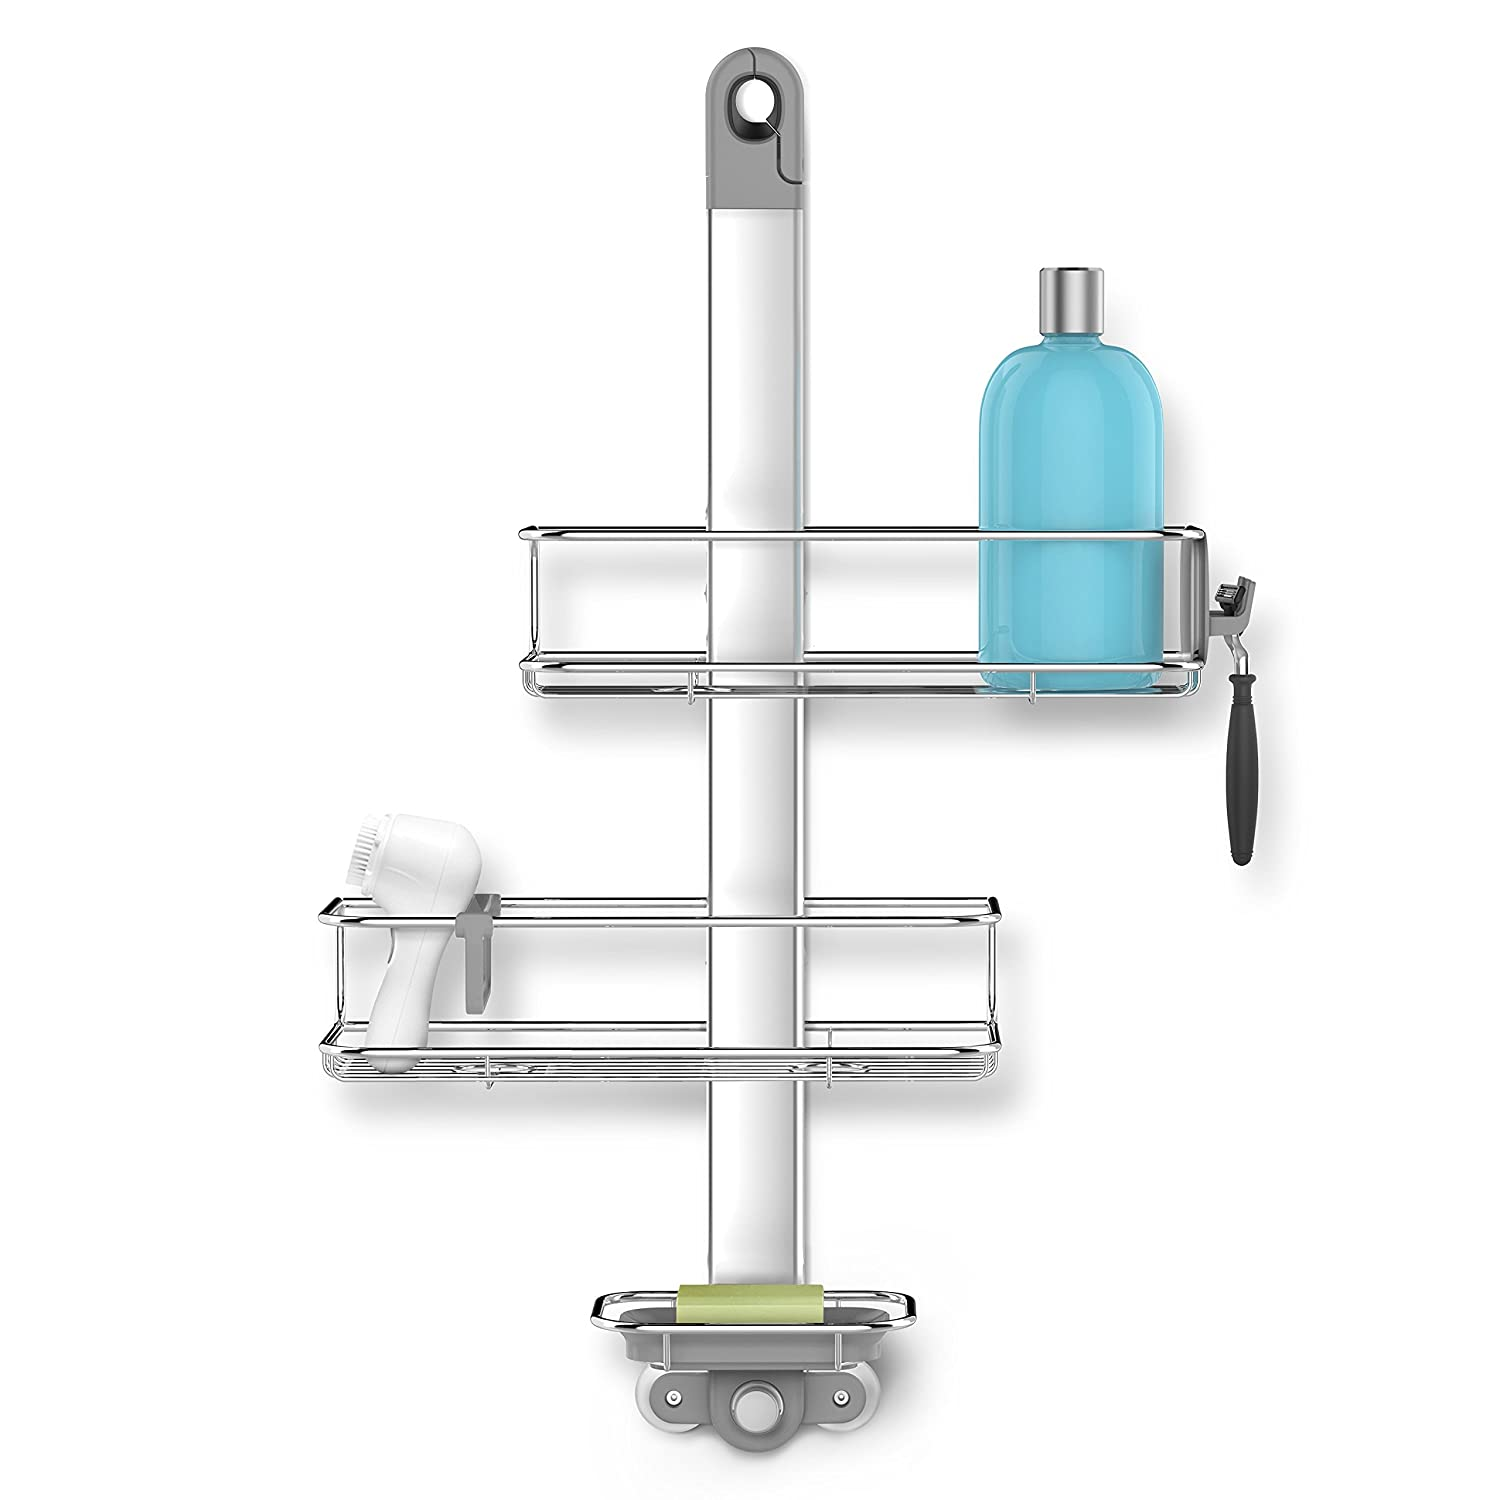 simplehuman Shower Caddy and Anodized Aluminum, Silver Stainless Steel, Adjustable BT1098